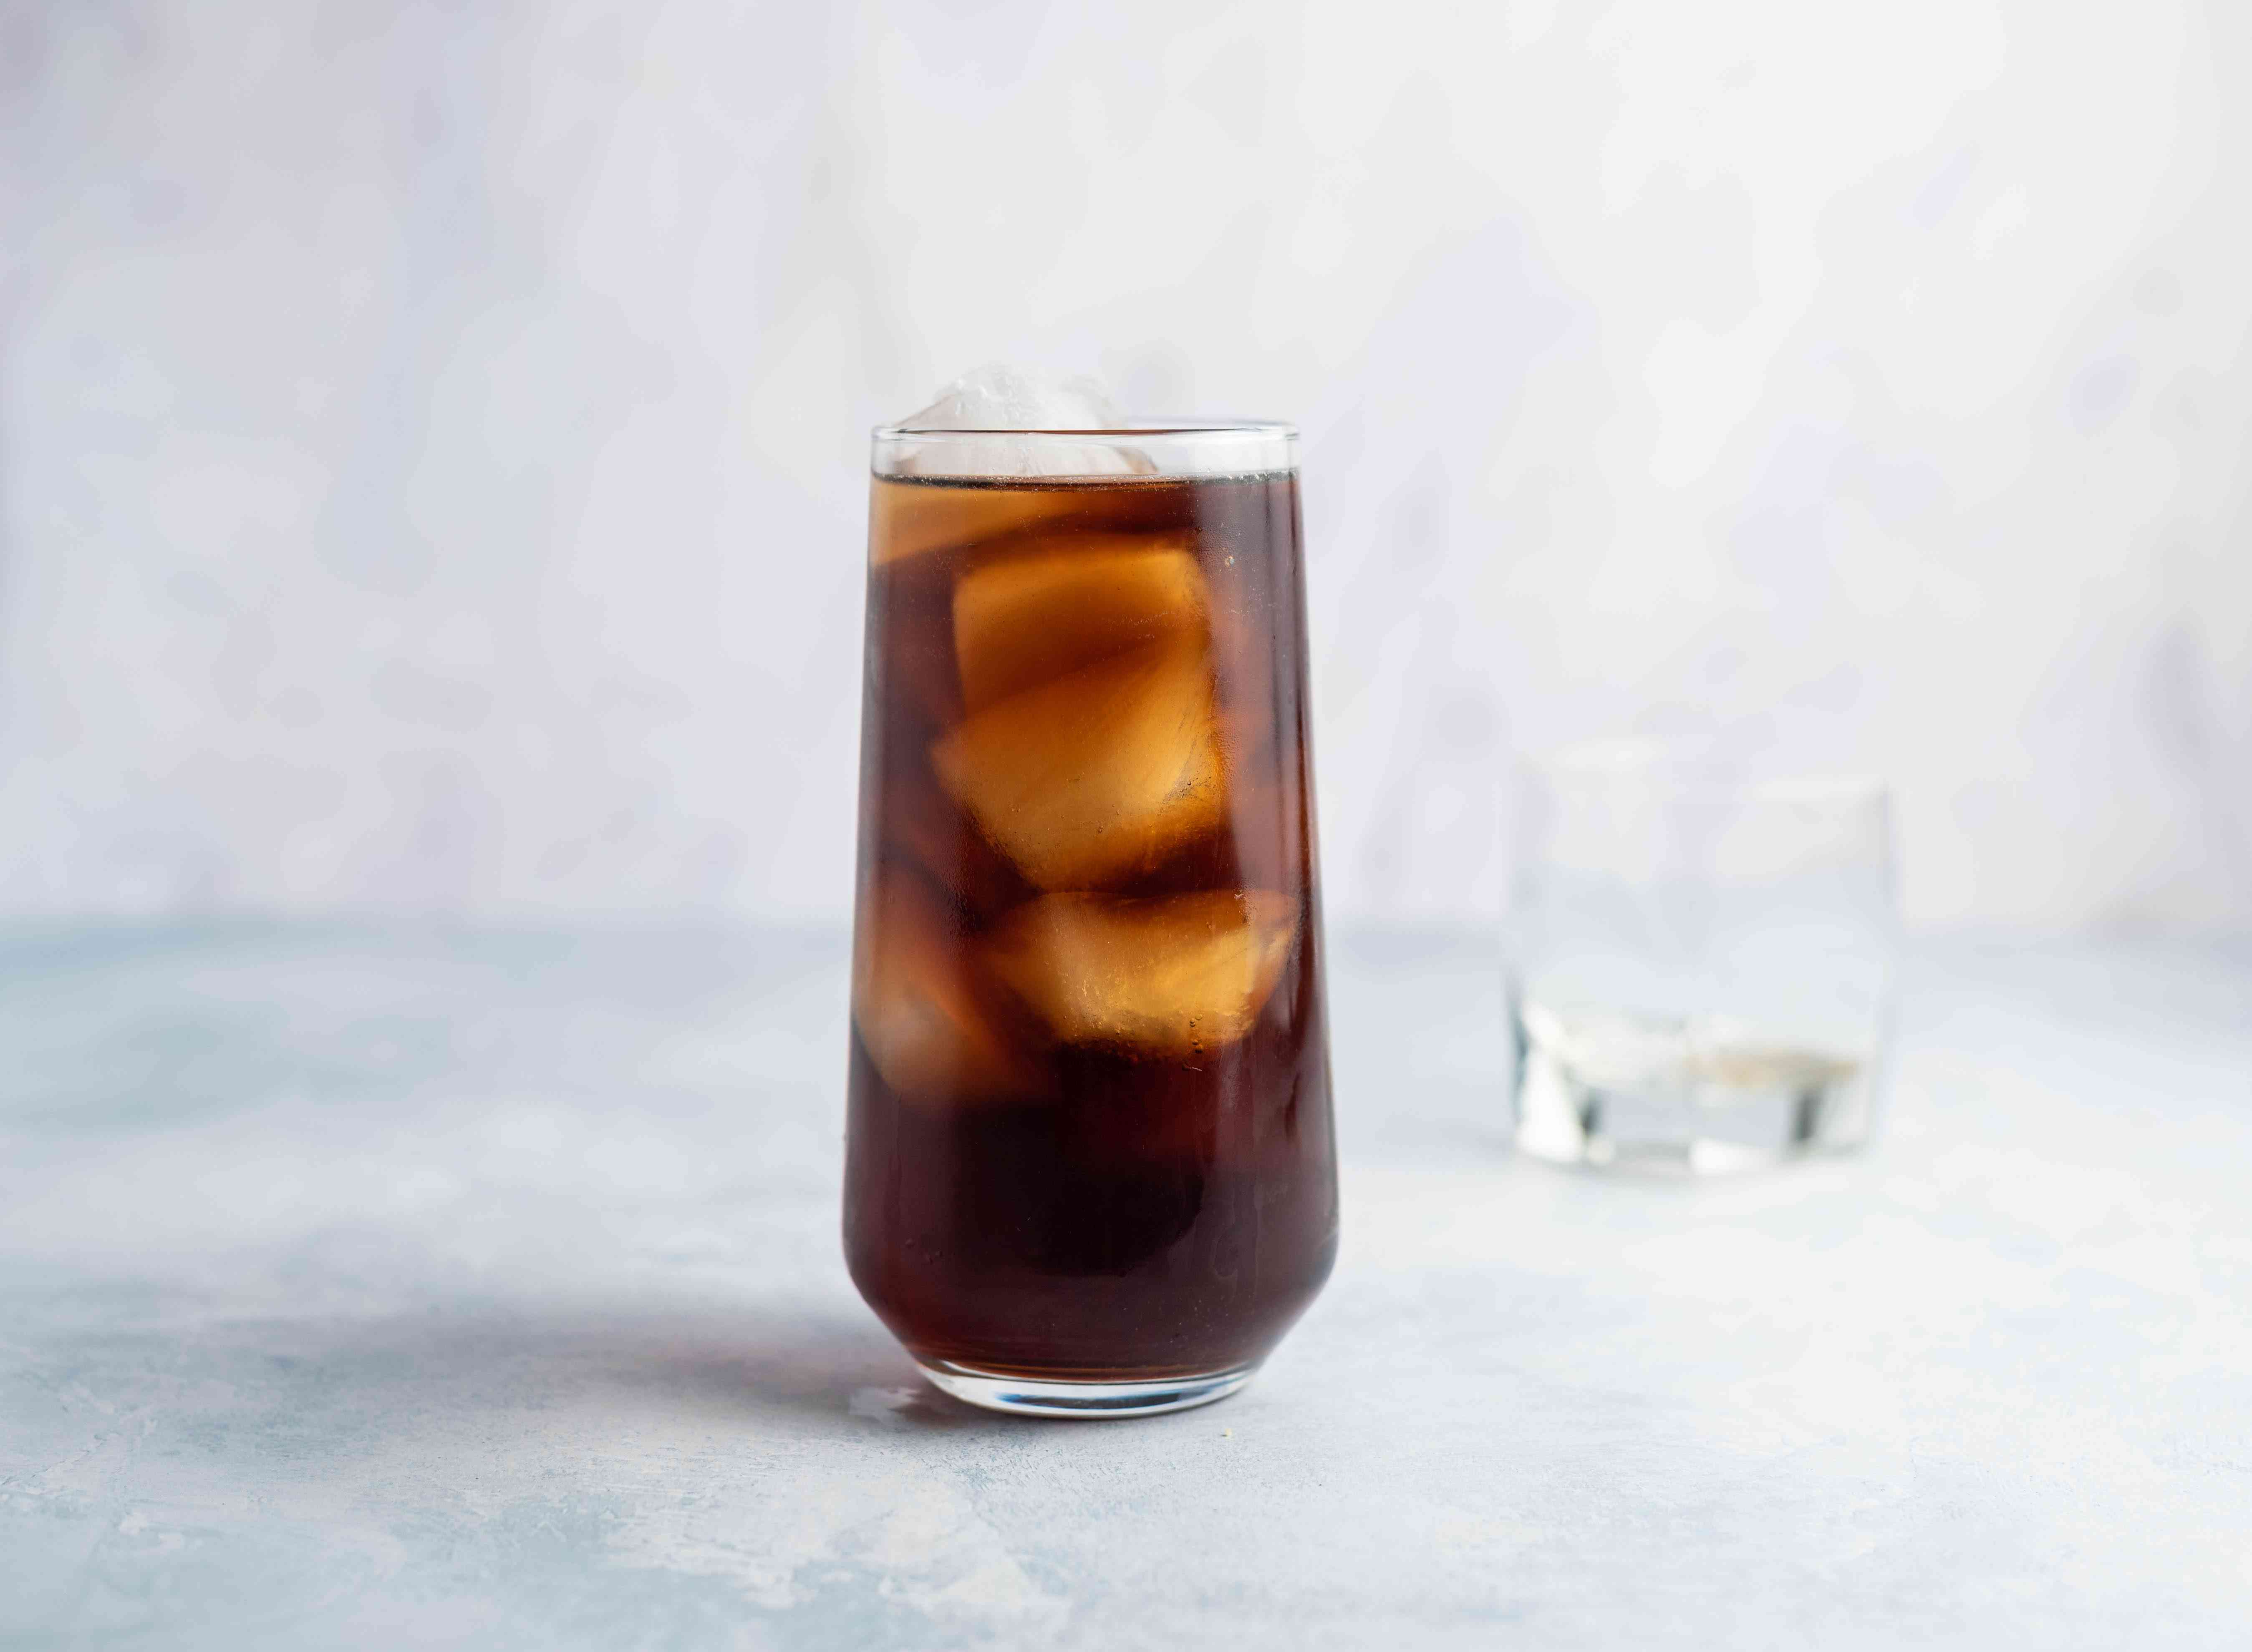 Cola is added to the ice and rum